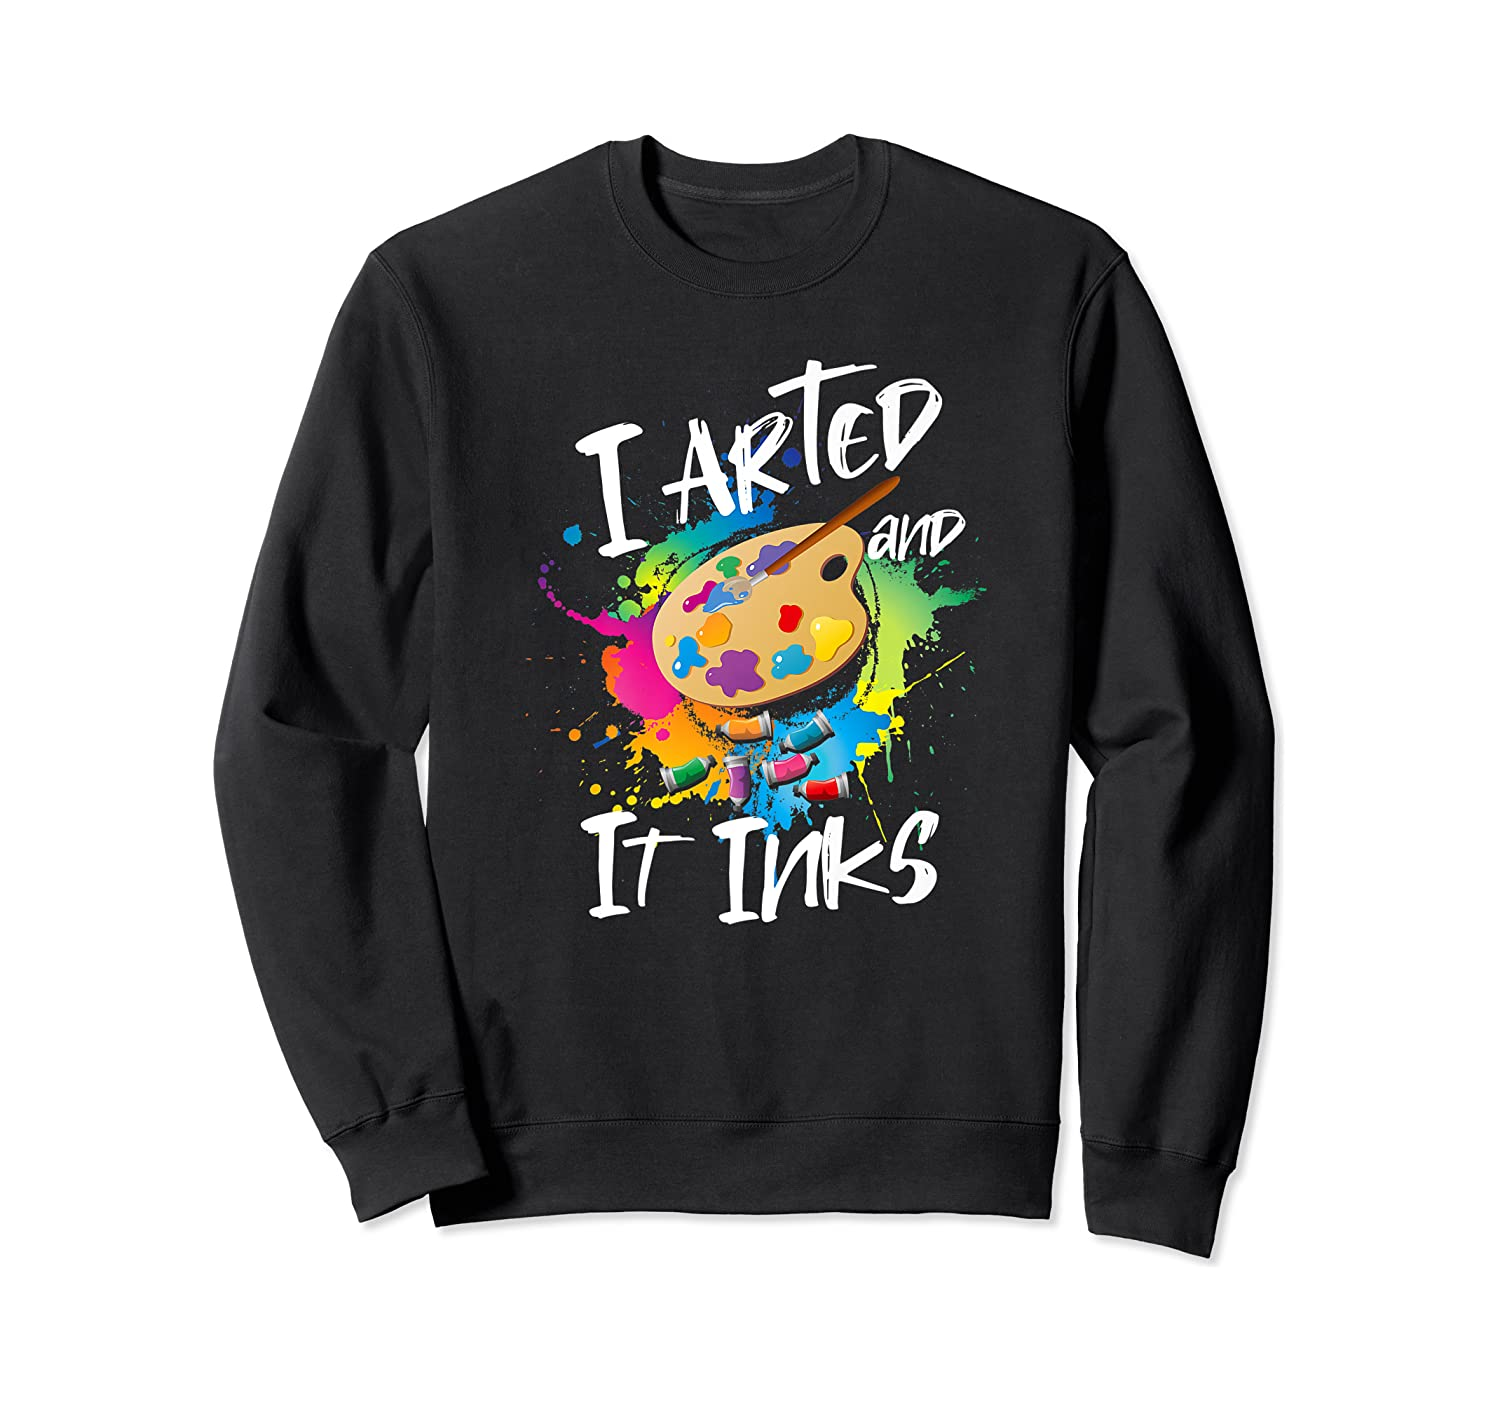 Gift For Artist Gifts For Painters Painter Gift Ideas Artist Premium T-shirt Crewneck Sweater